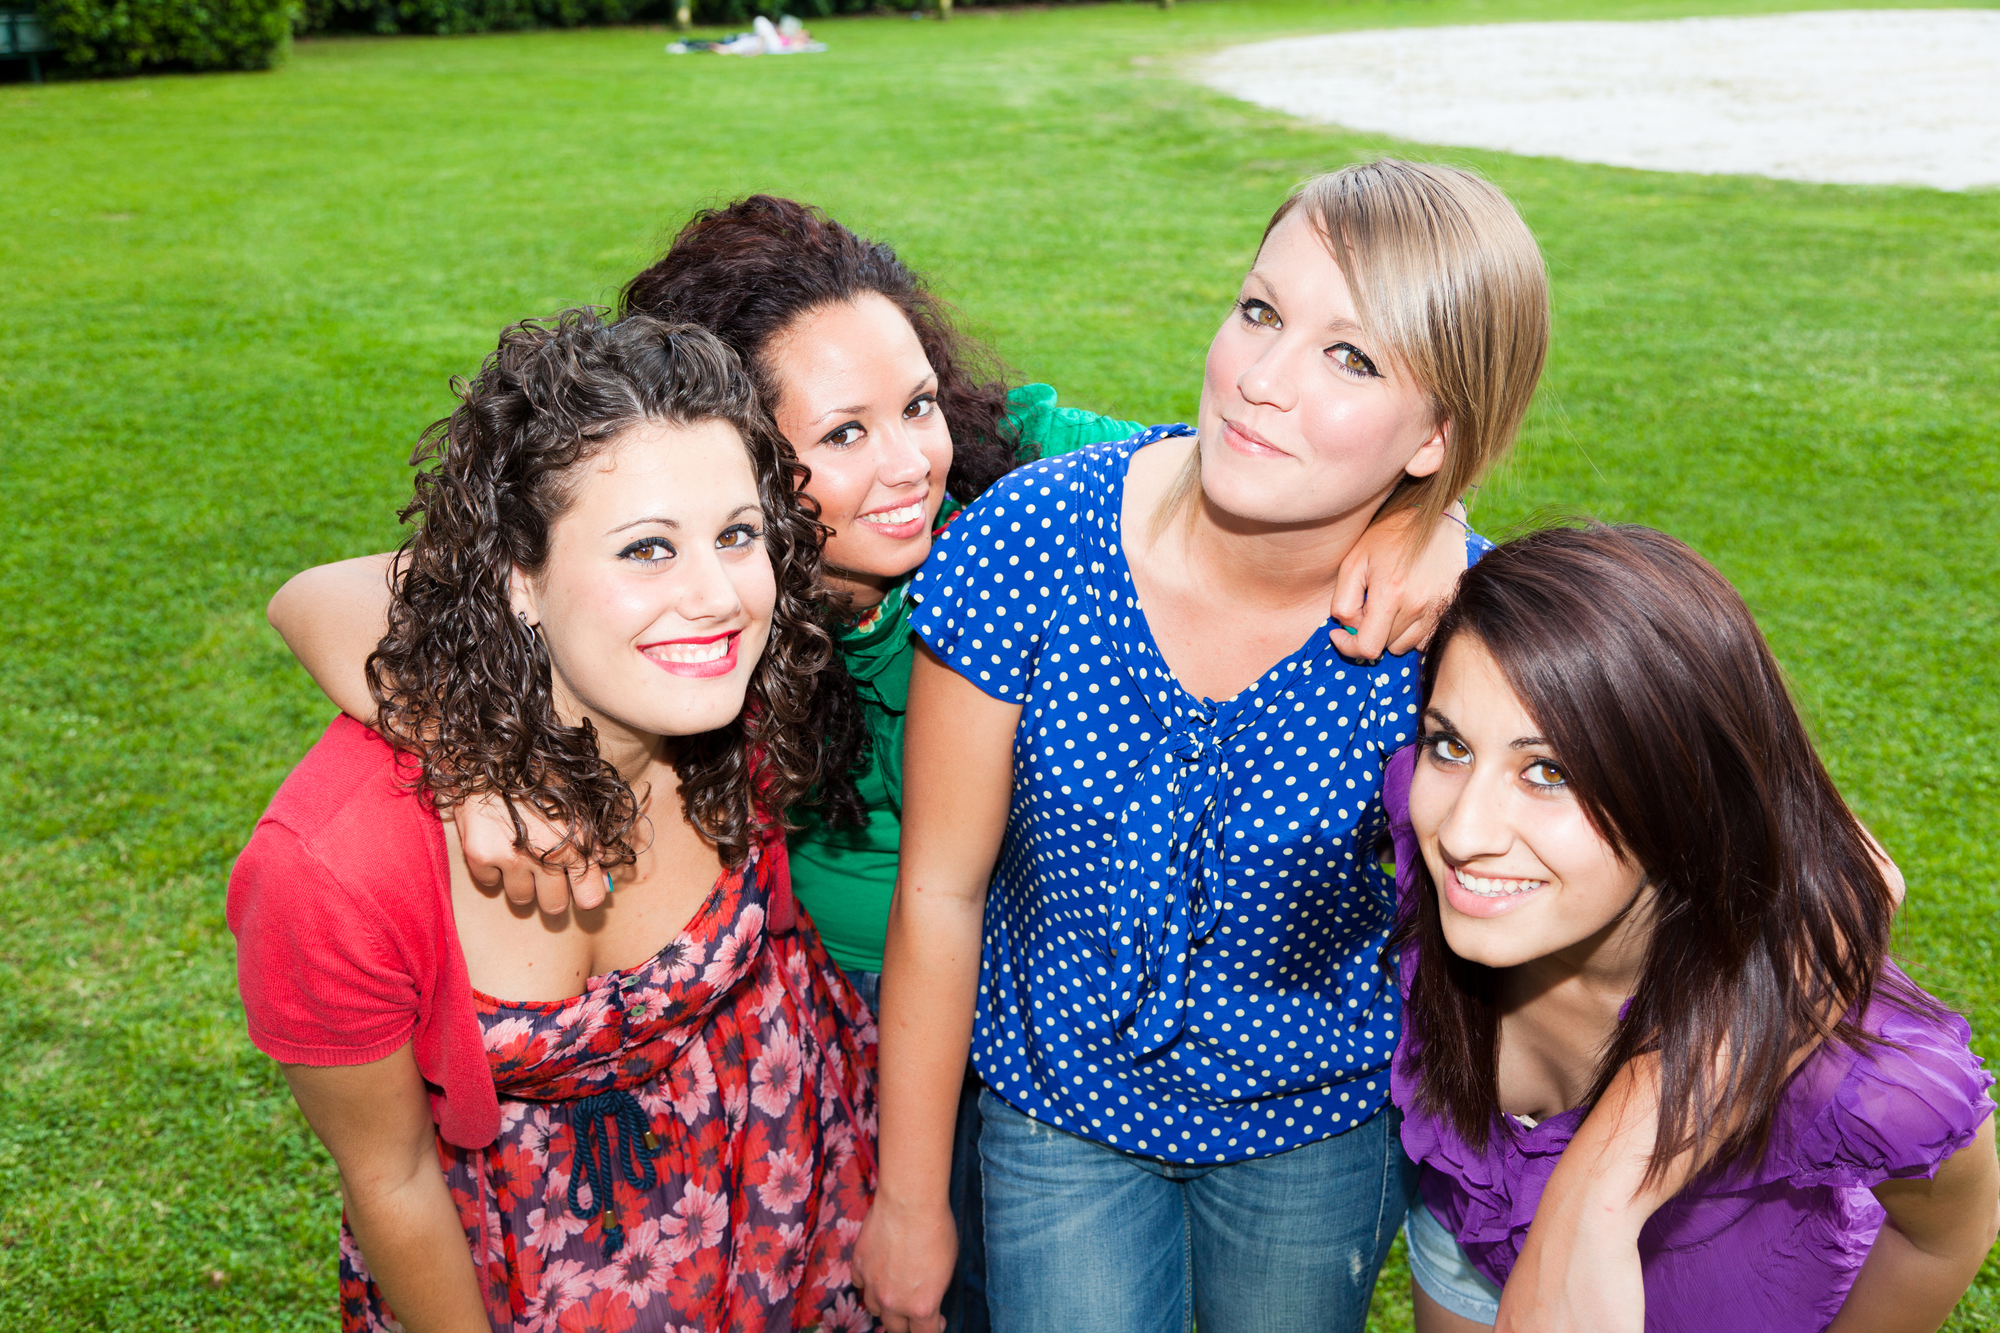 Teen girls support groups in Santa Rosa